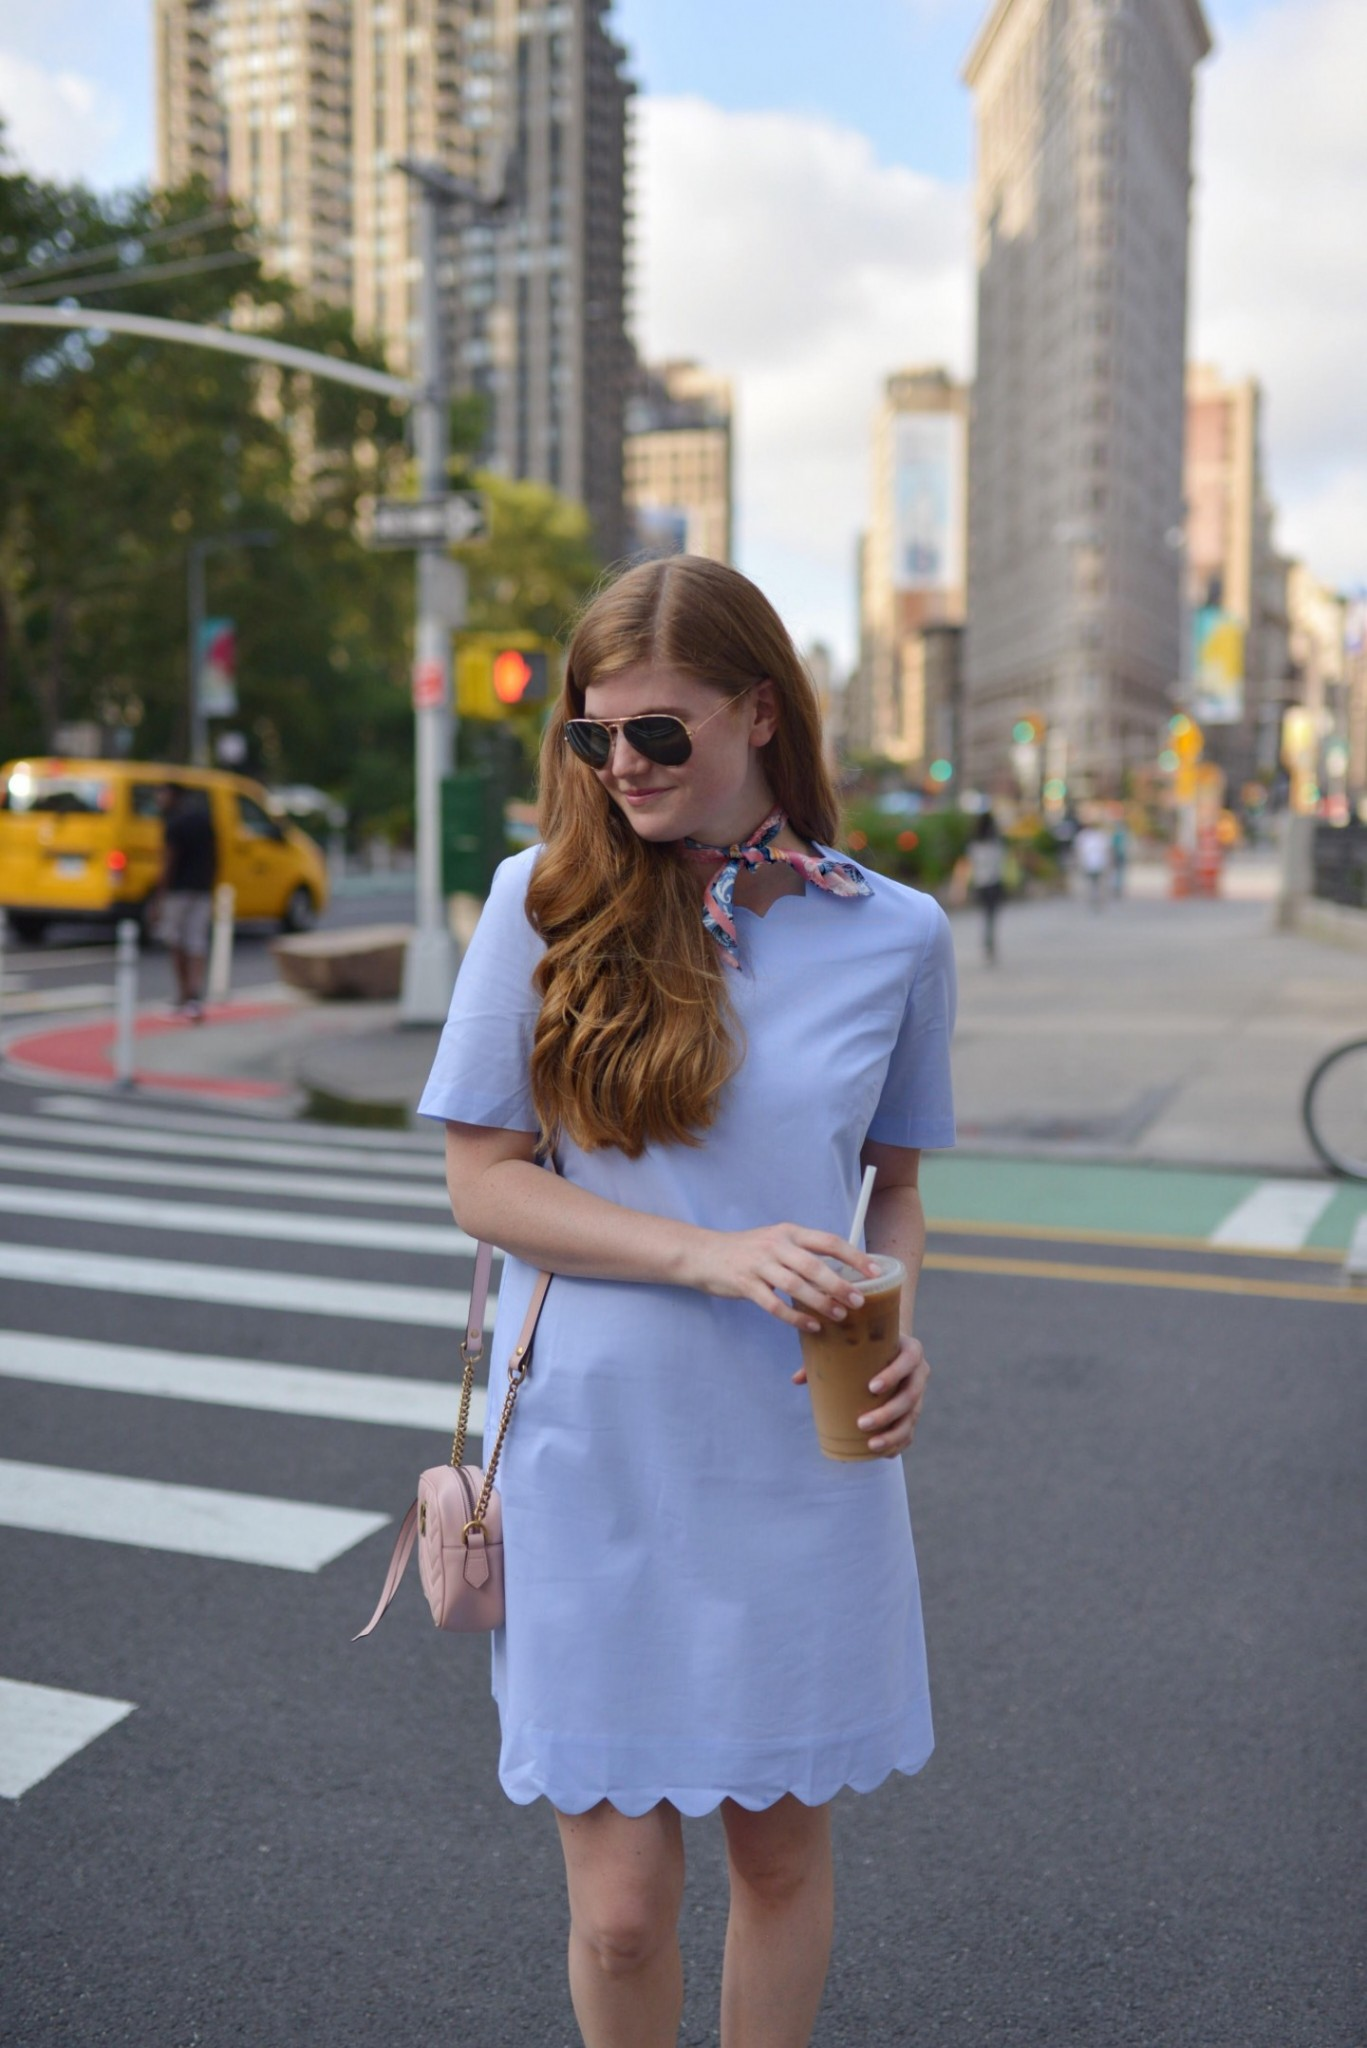 Lifestyle blogger Mollie Sheperdson shares tips on styling an LBD (Little Blue Dress) all year long